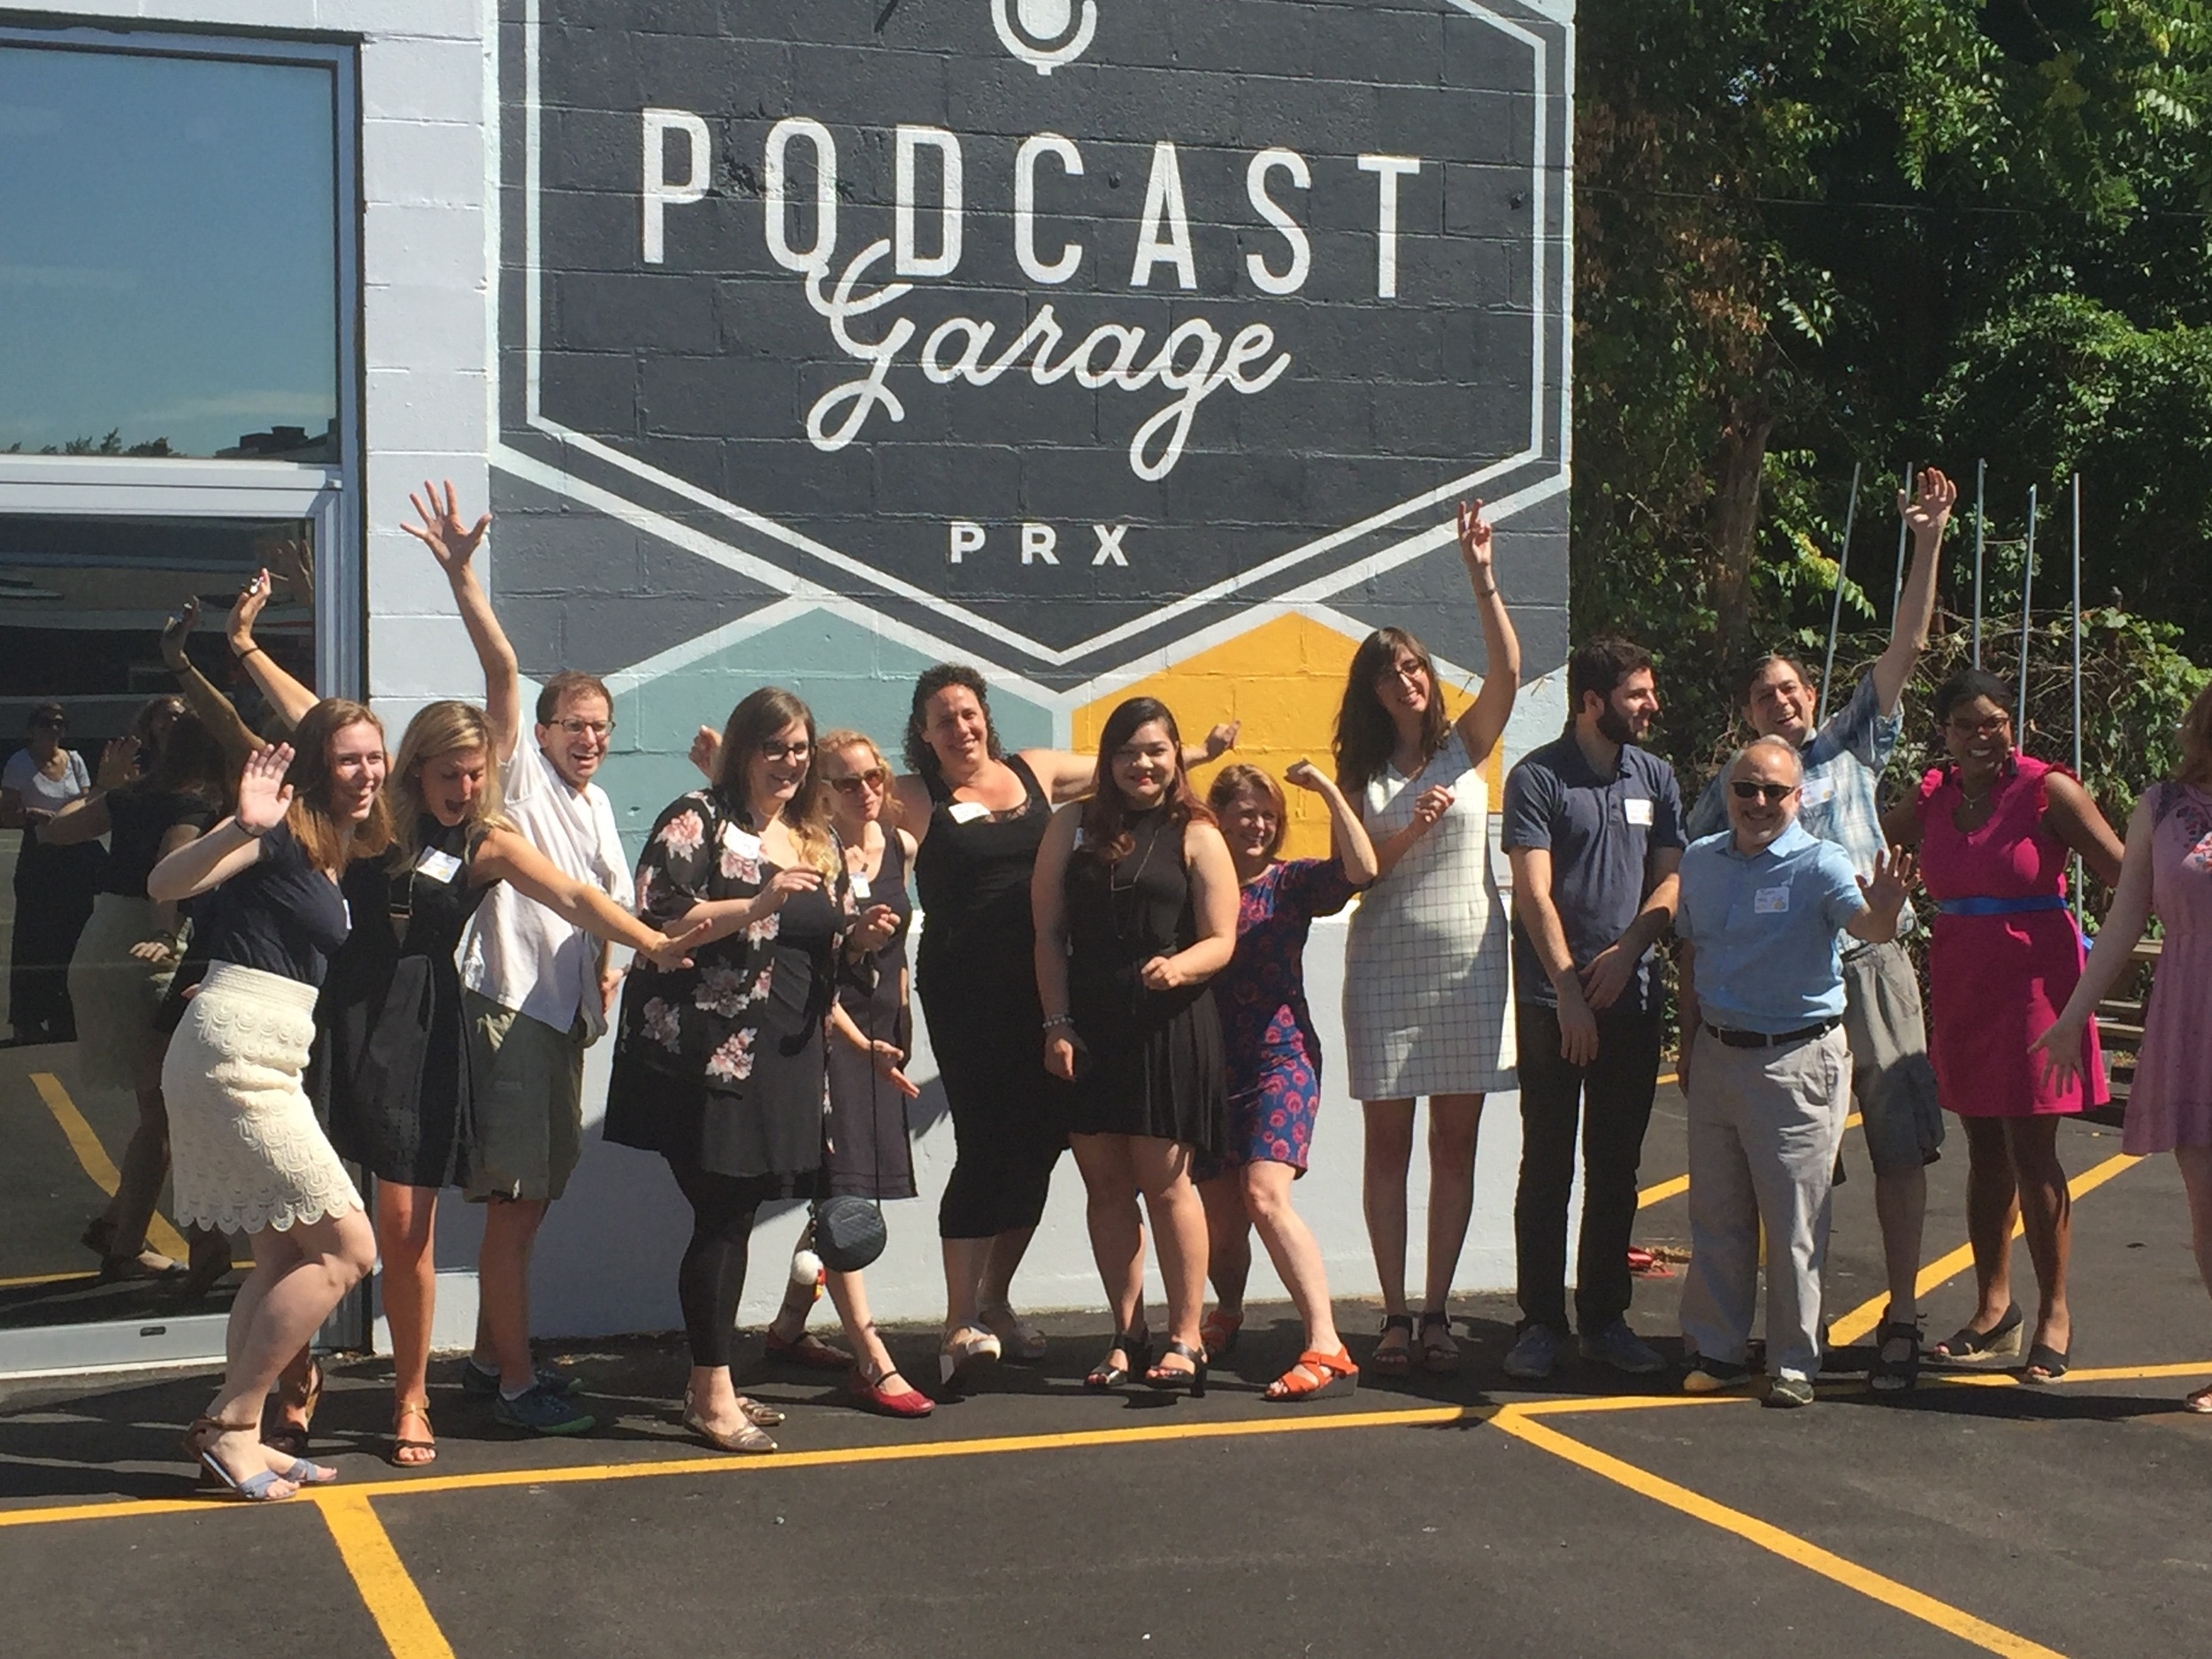 PRX staffers celebrate the opening of the Podcast Garage on August 3, 2016.